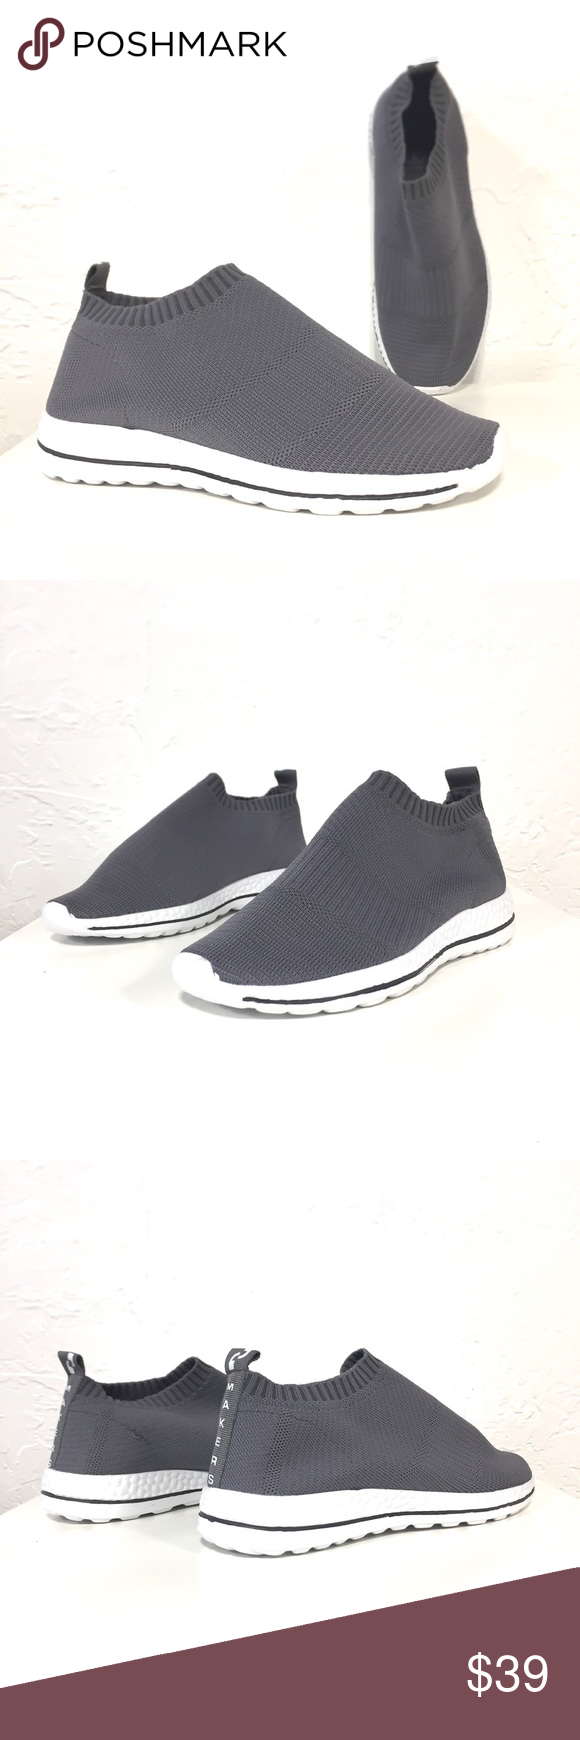 Gray Lifestyle Sneakers Ultra comfortable and stylish